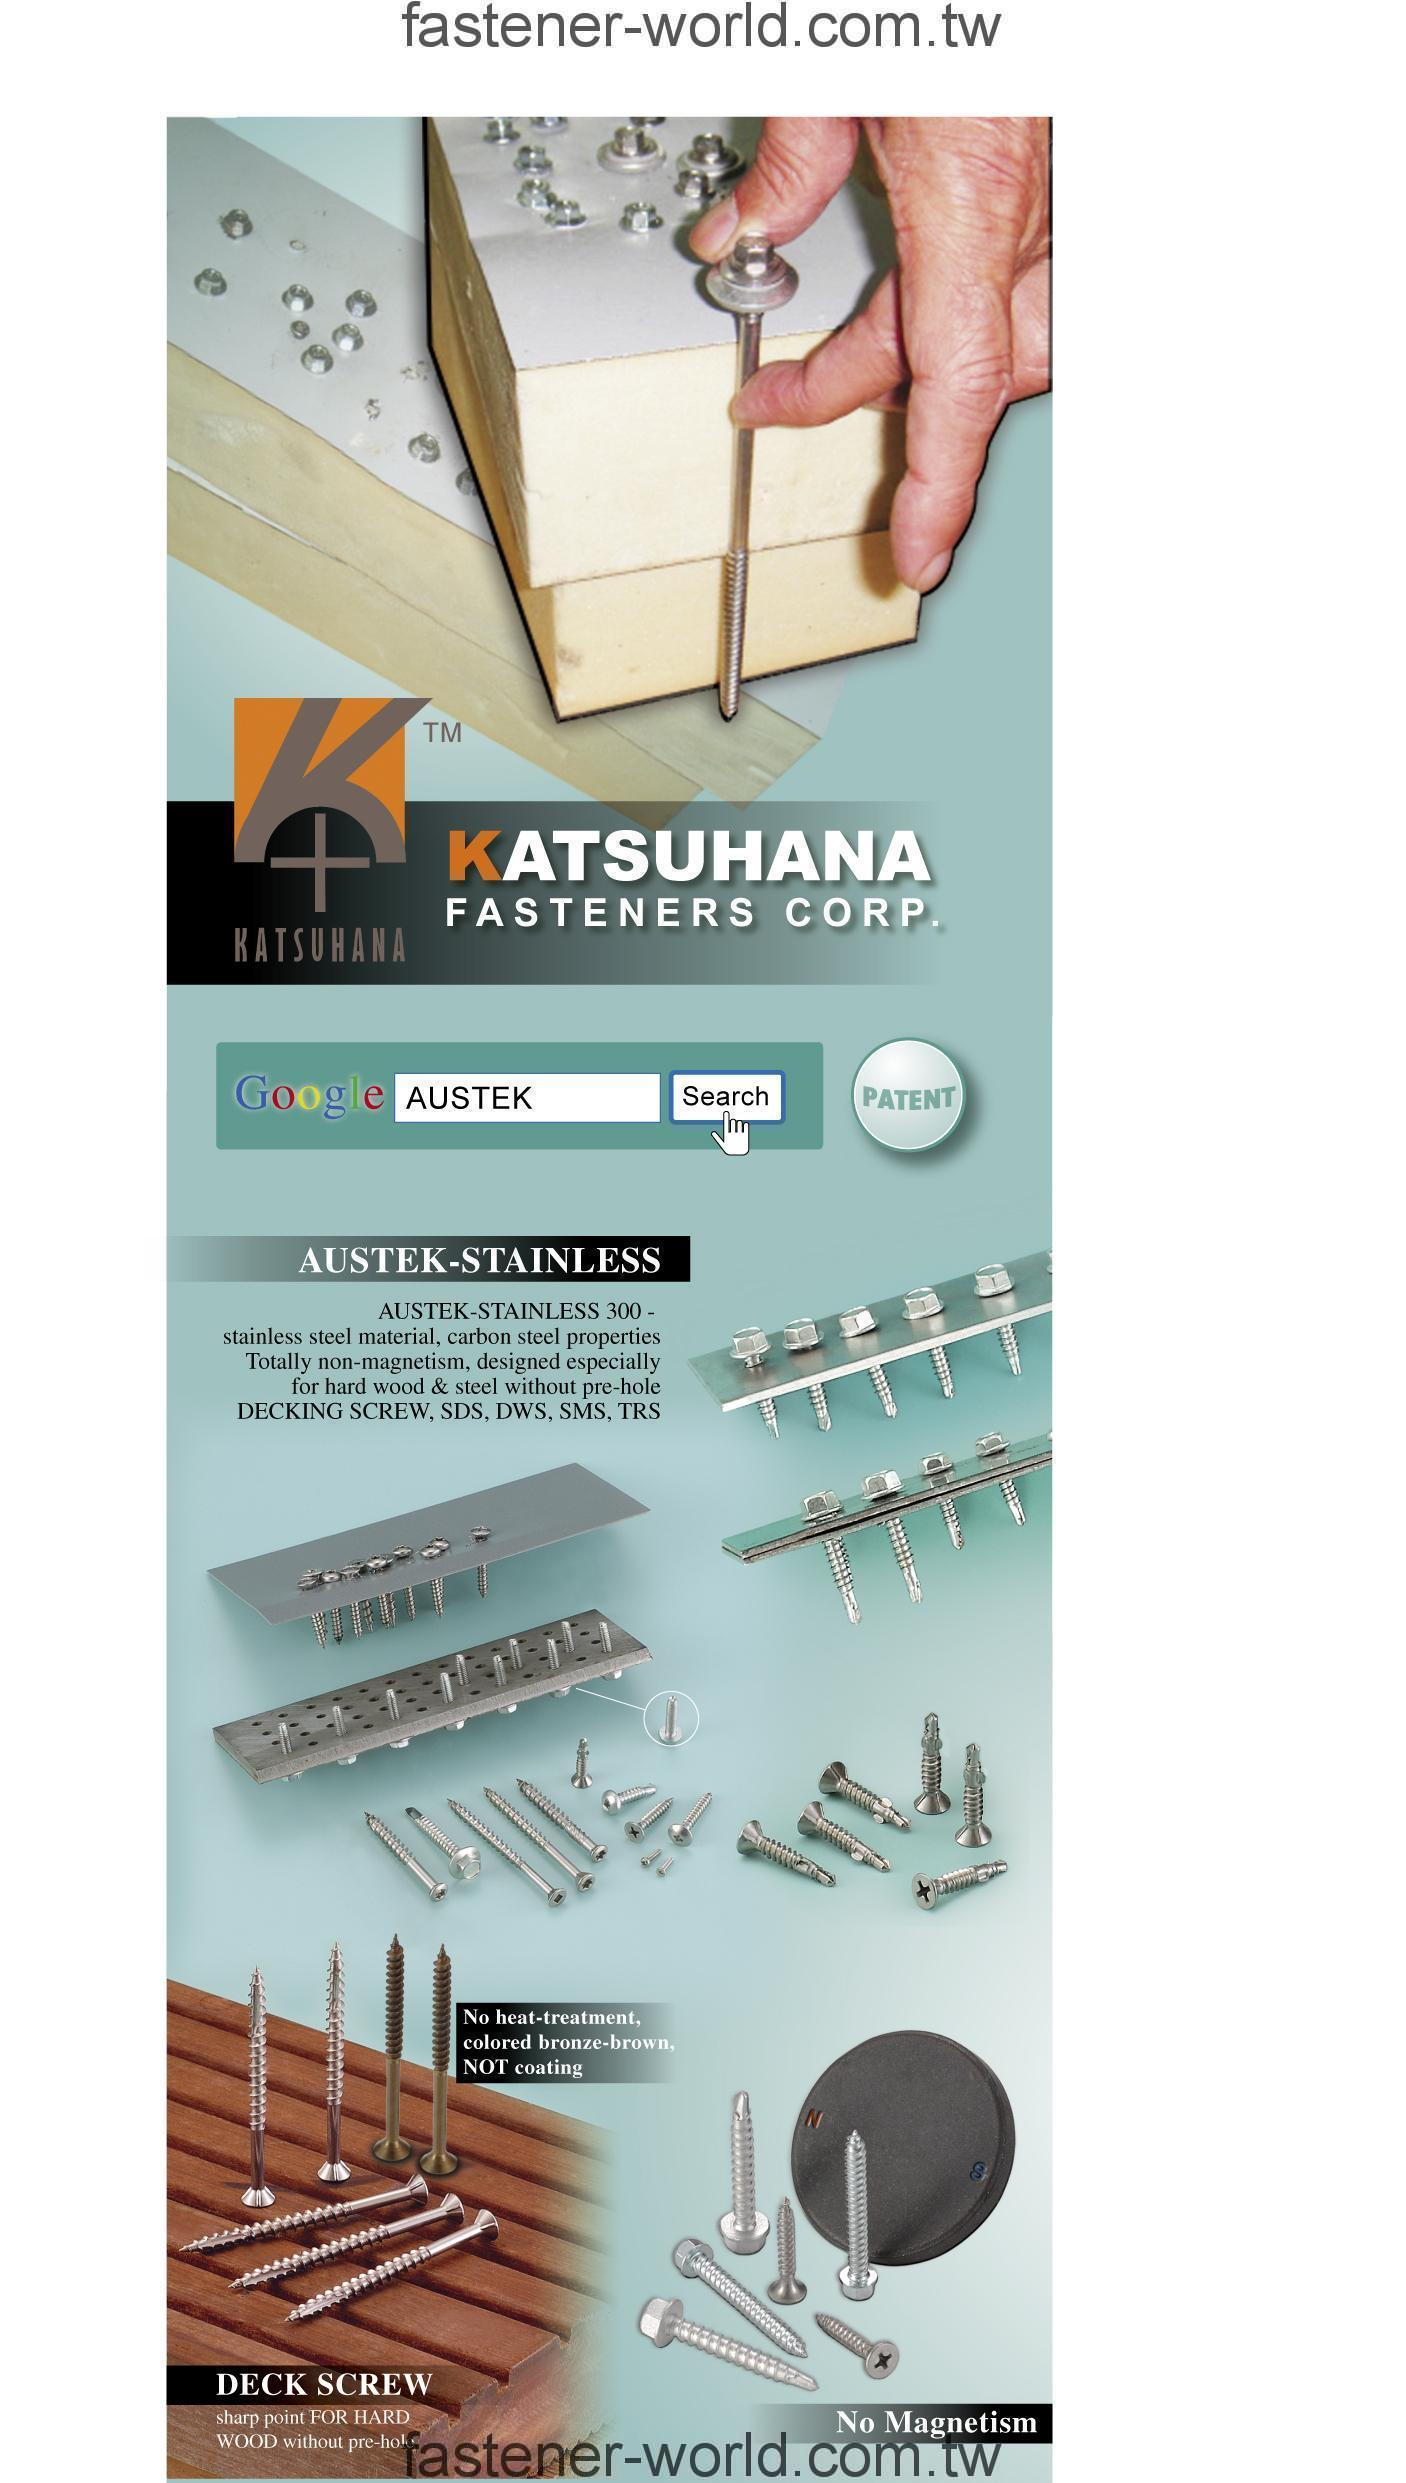 KATSUHANA FASTENERS CORP.  Online Catalogues